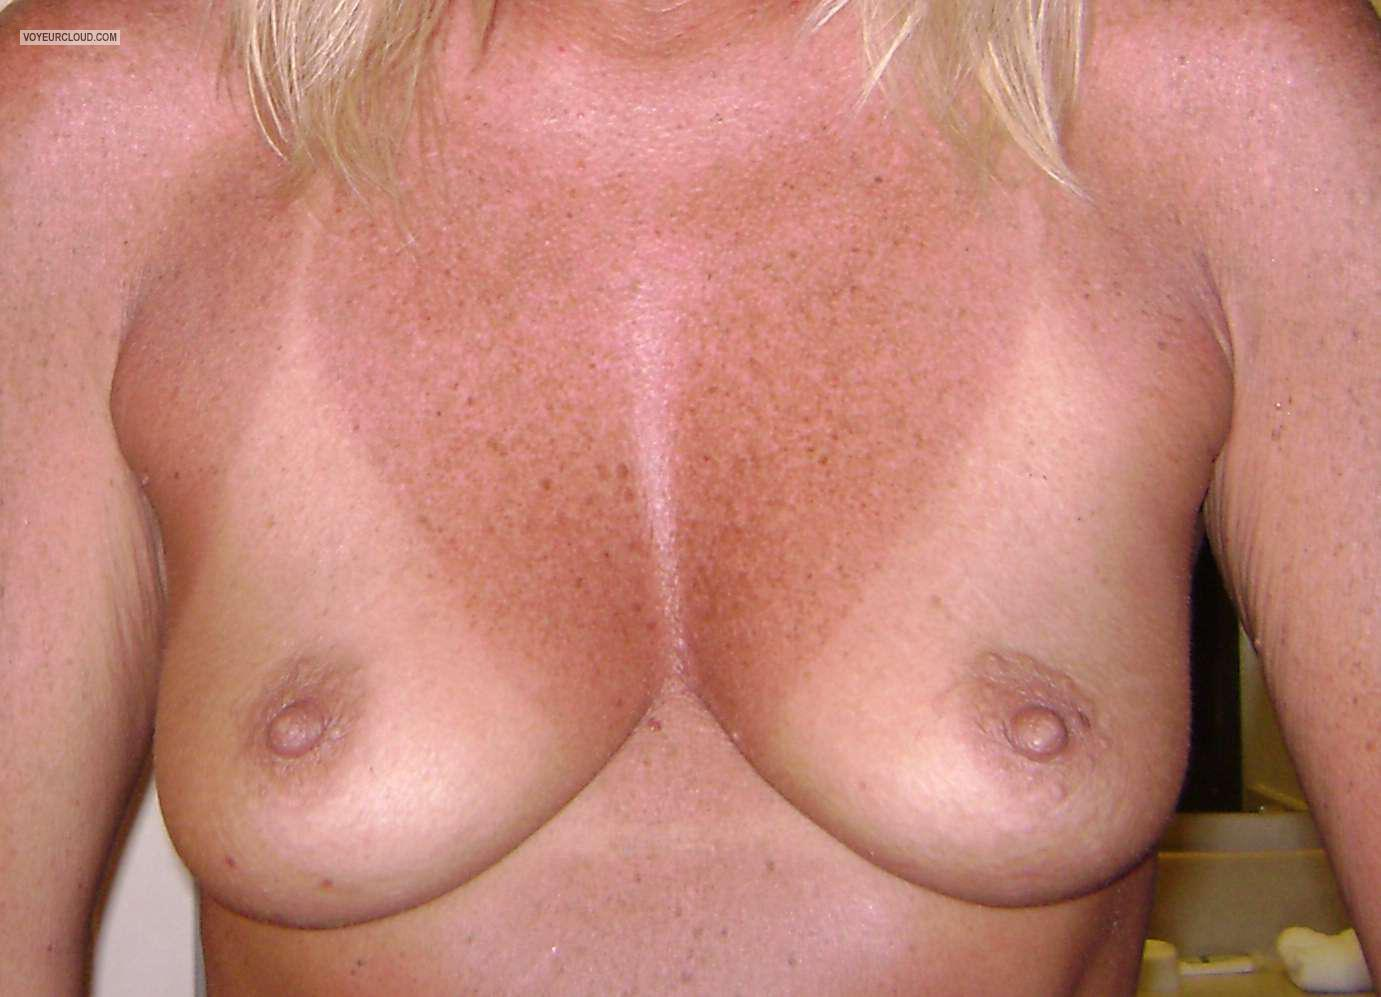 Small Tits Of My Wife Scorpio-wife